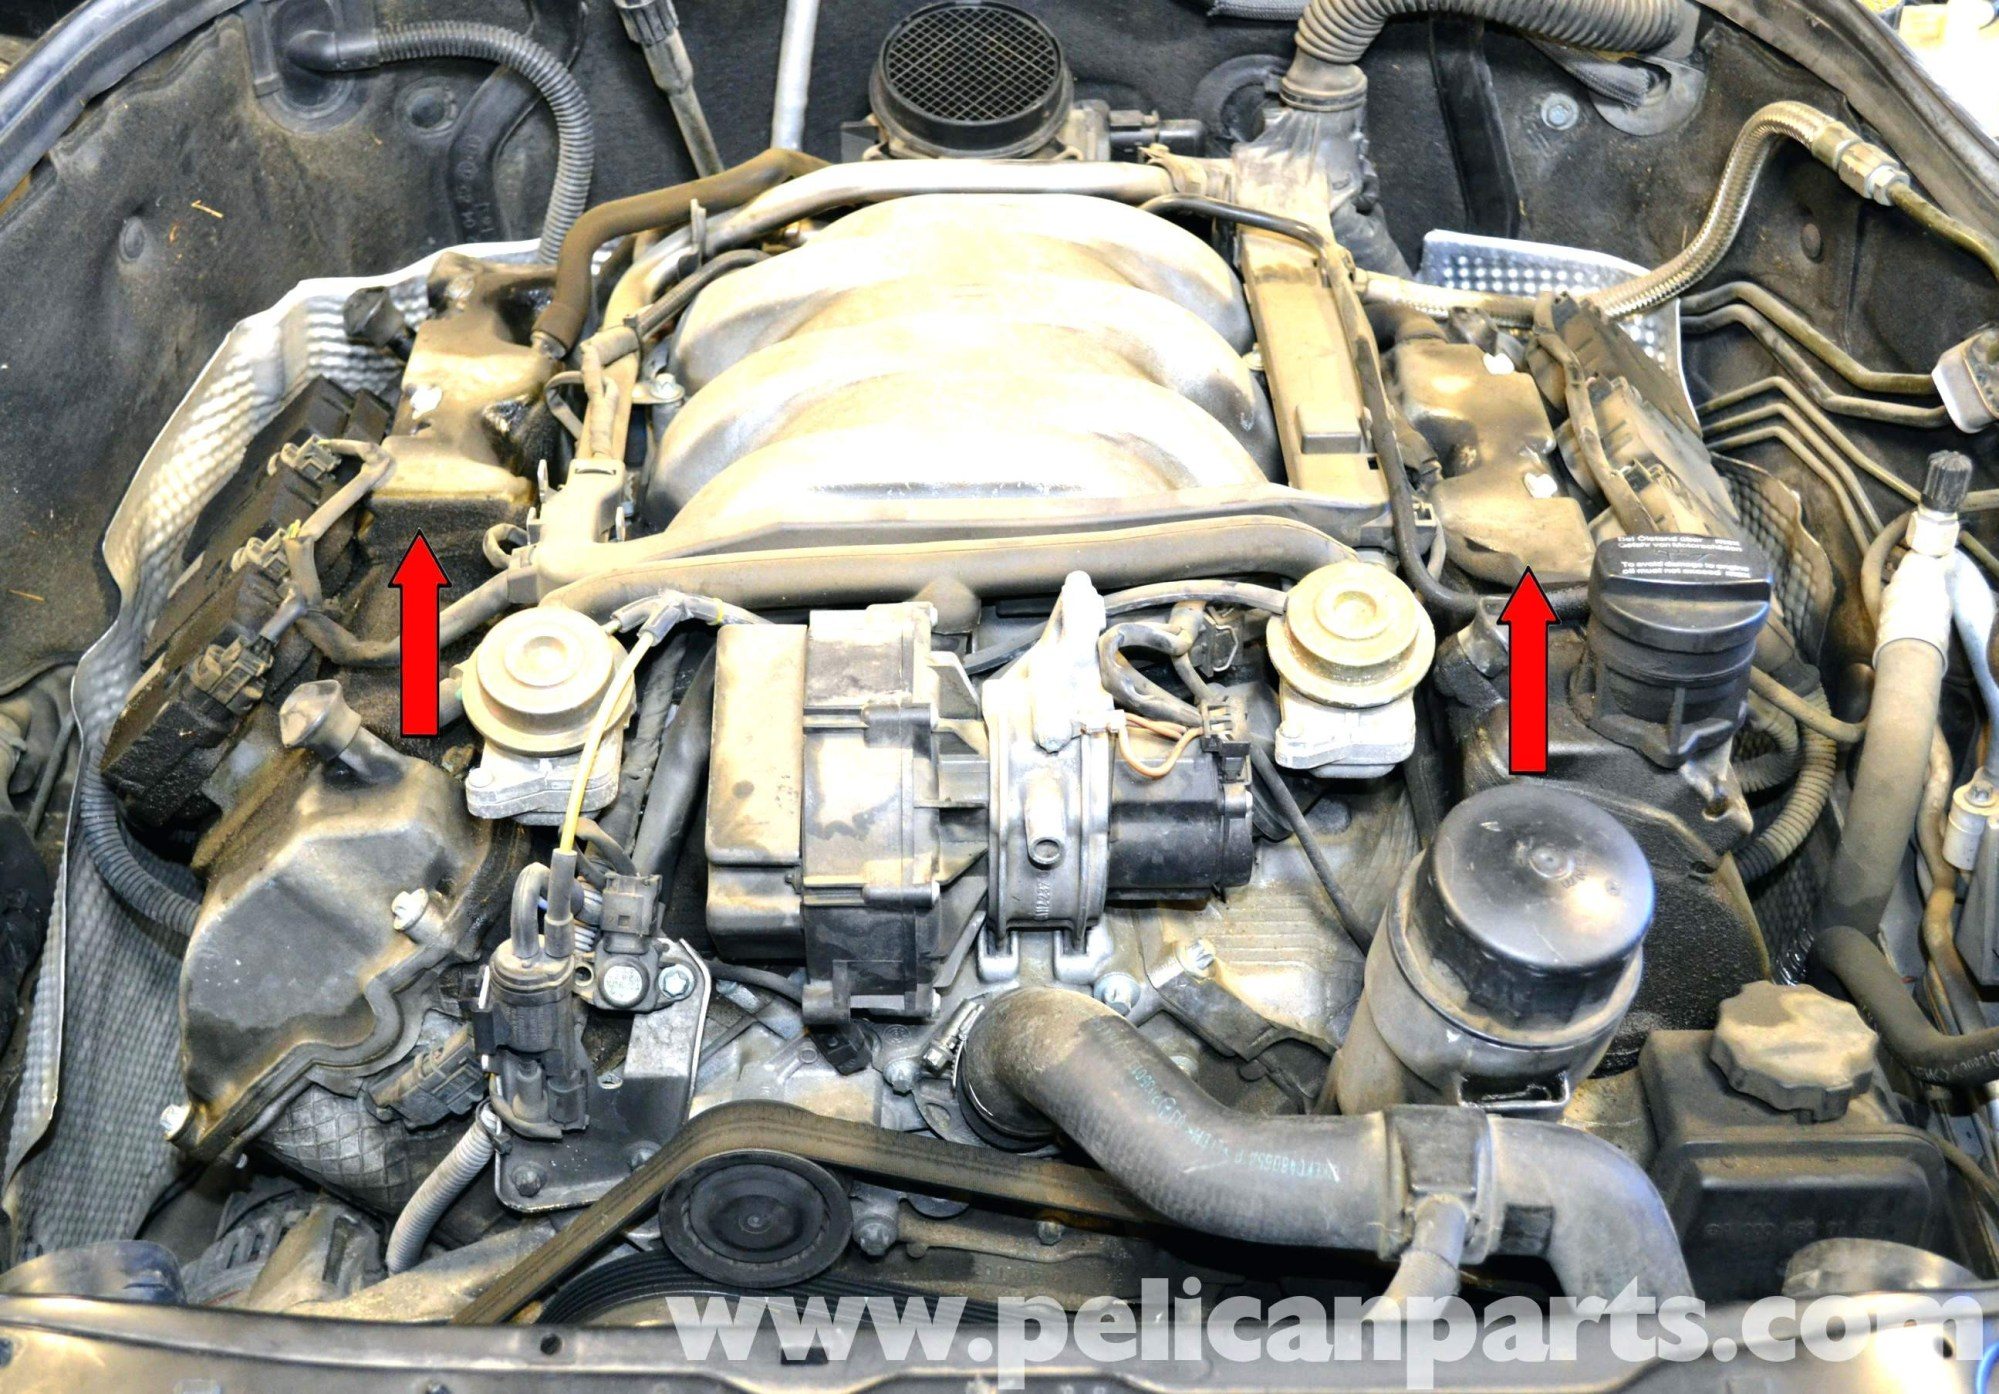 hight resolution of mercedes ml320 engine diagram wiring diagram img 2000 mercedes ml320 engine diagram mercedes ml320 engine diagram